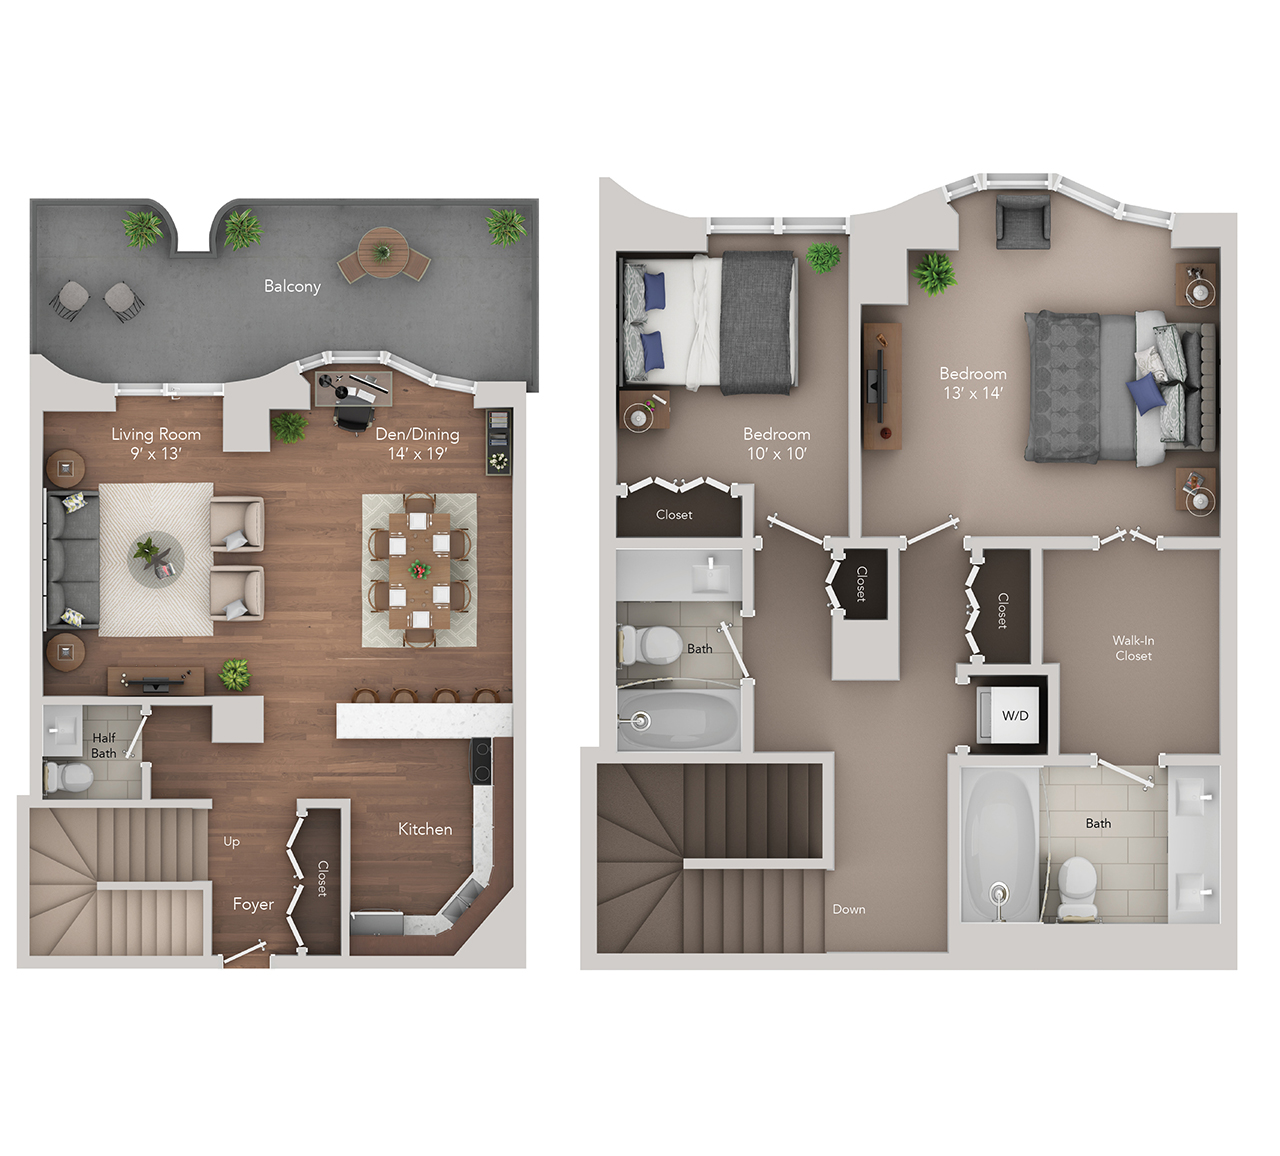 2 BR 2.5 BA Townhome